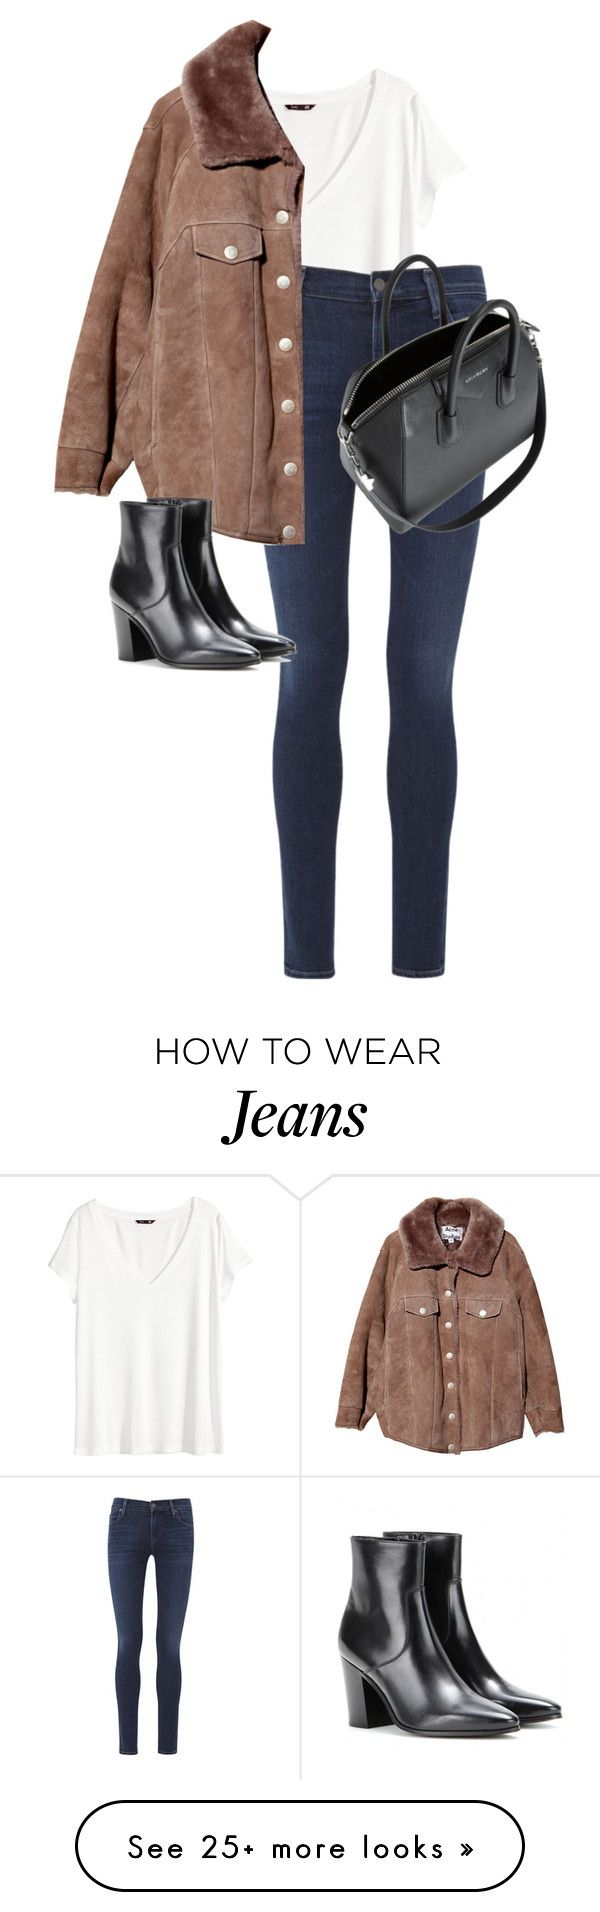 """Untitled #10420"" by alexsrogers on Polyvore featuring H&M, Citizens of Humanity, Acne Studios, Yves Saint Laurent and Givenchy"